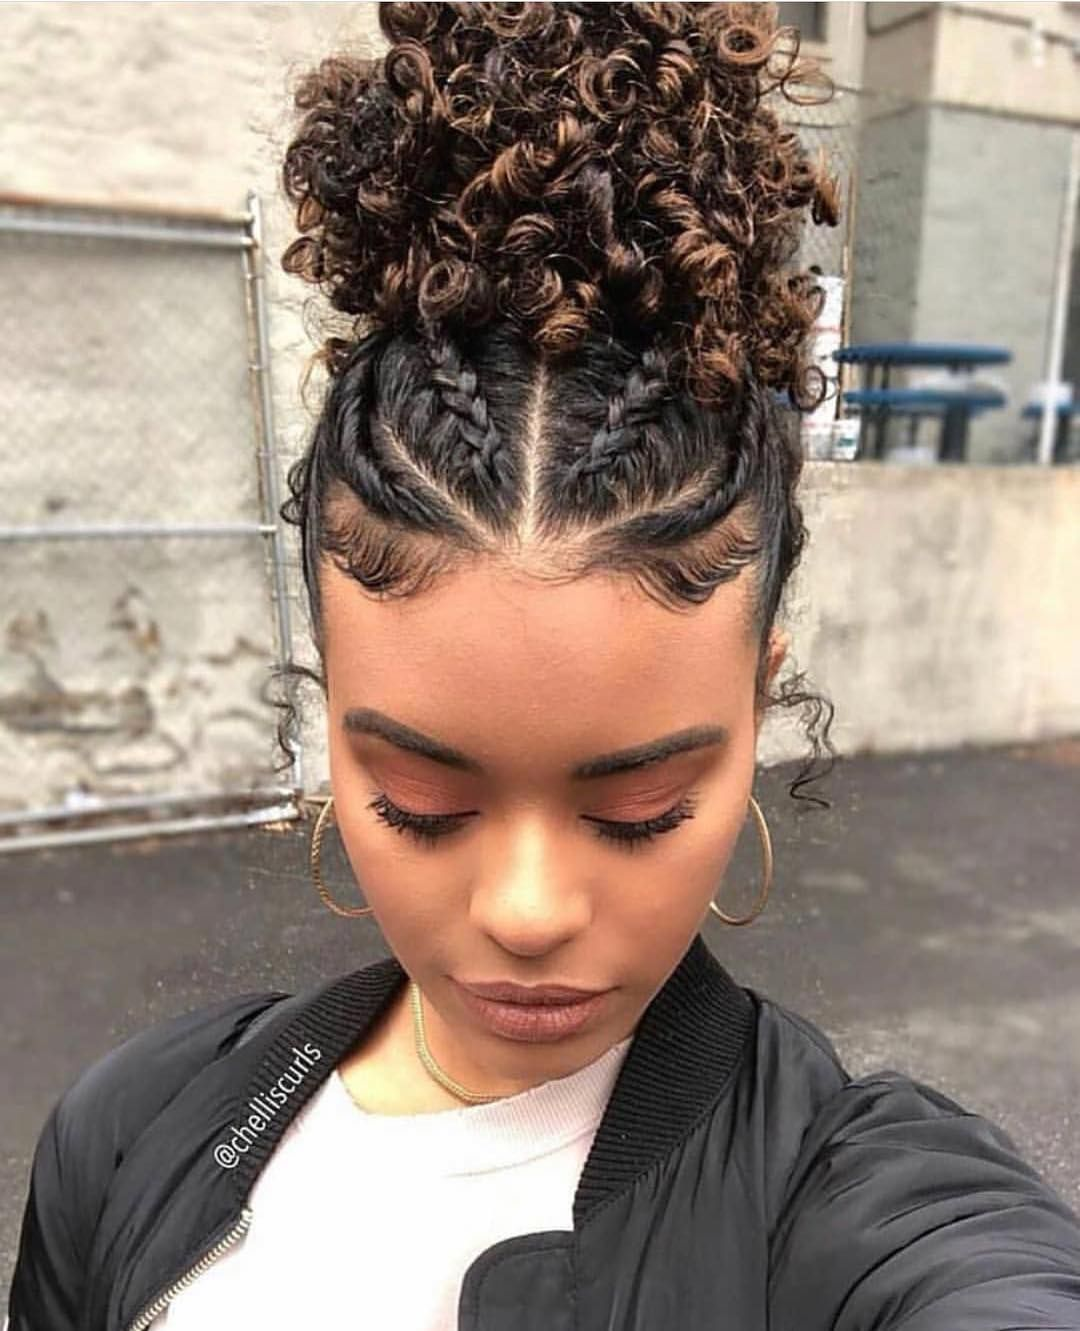 Professional Hair Care on Instagram